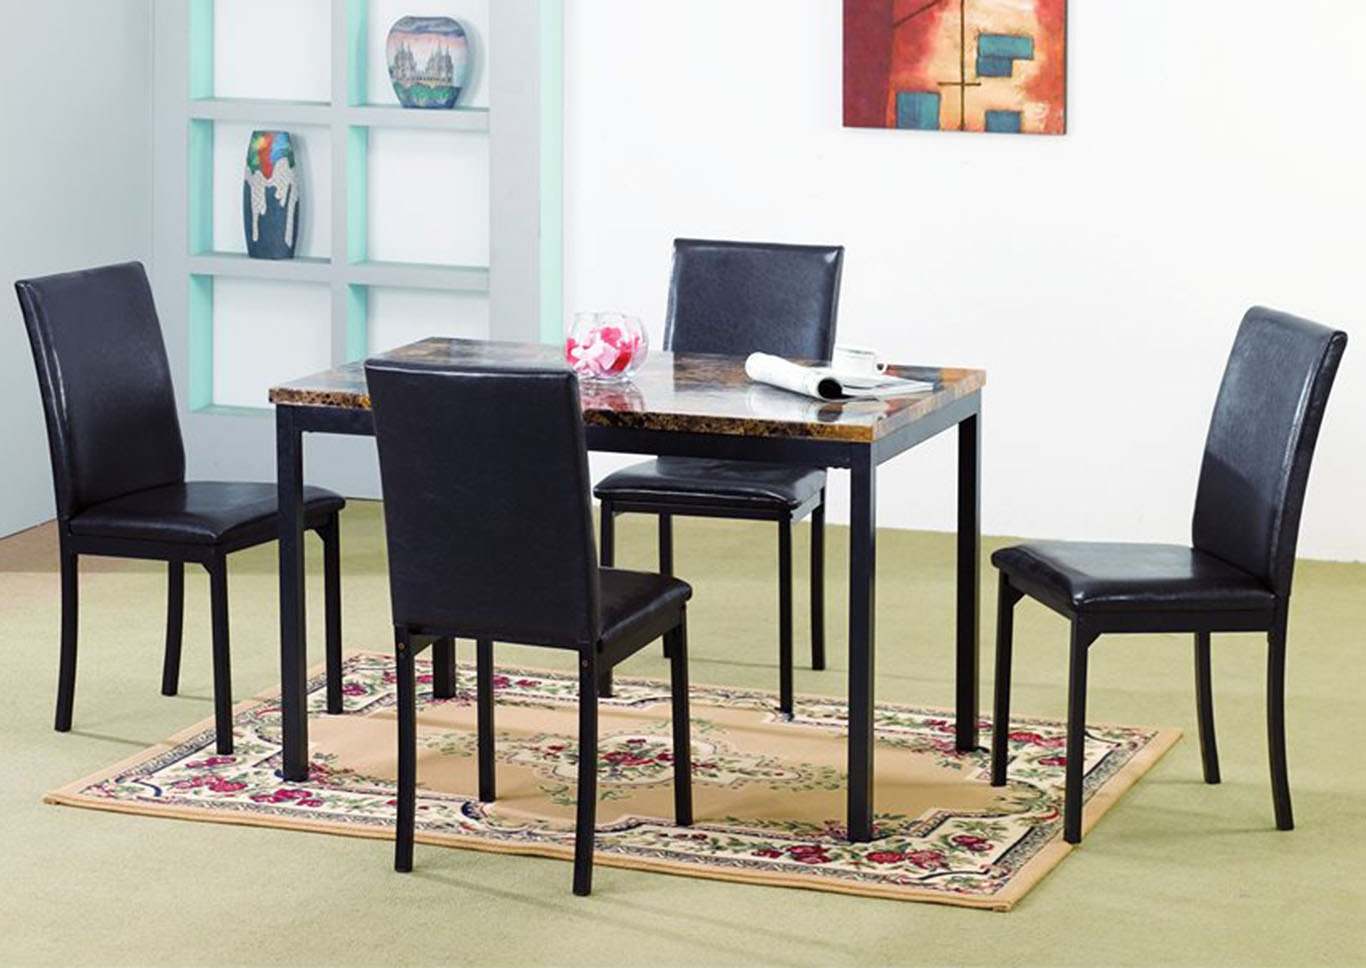 Bob\'s Discount House Brown/Black Faux Marble Table & 4 Chairs